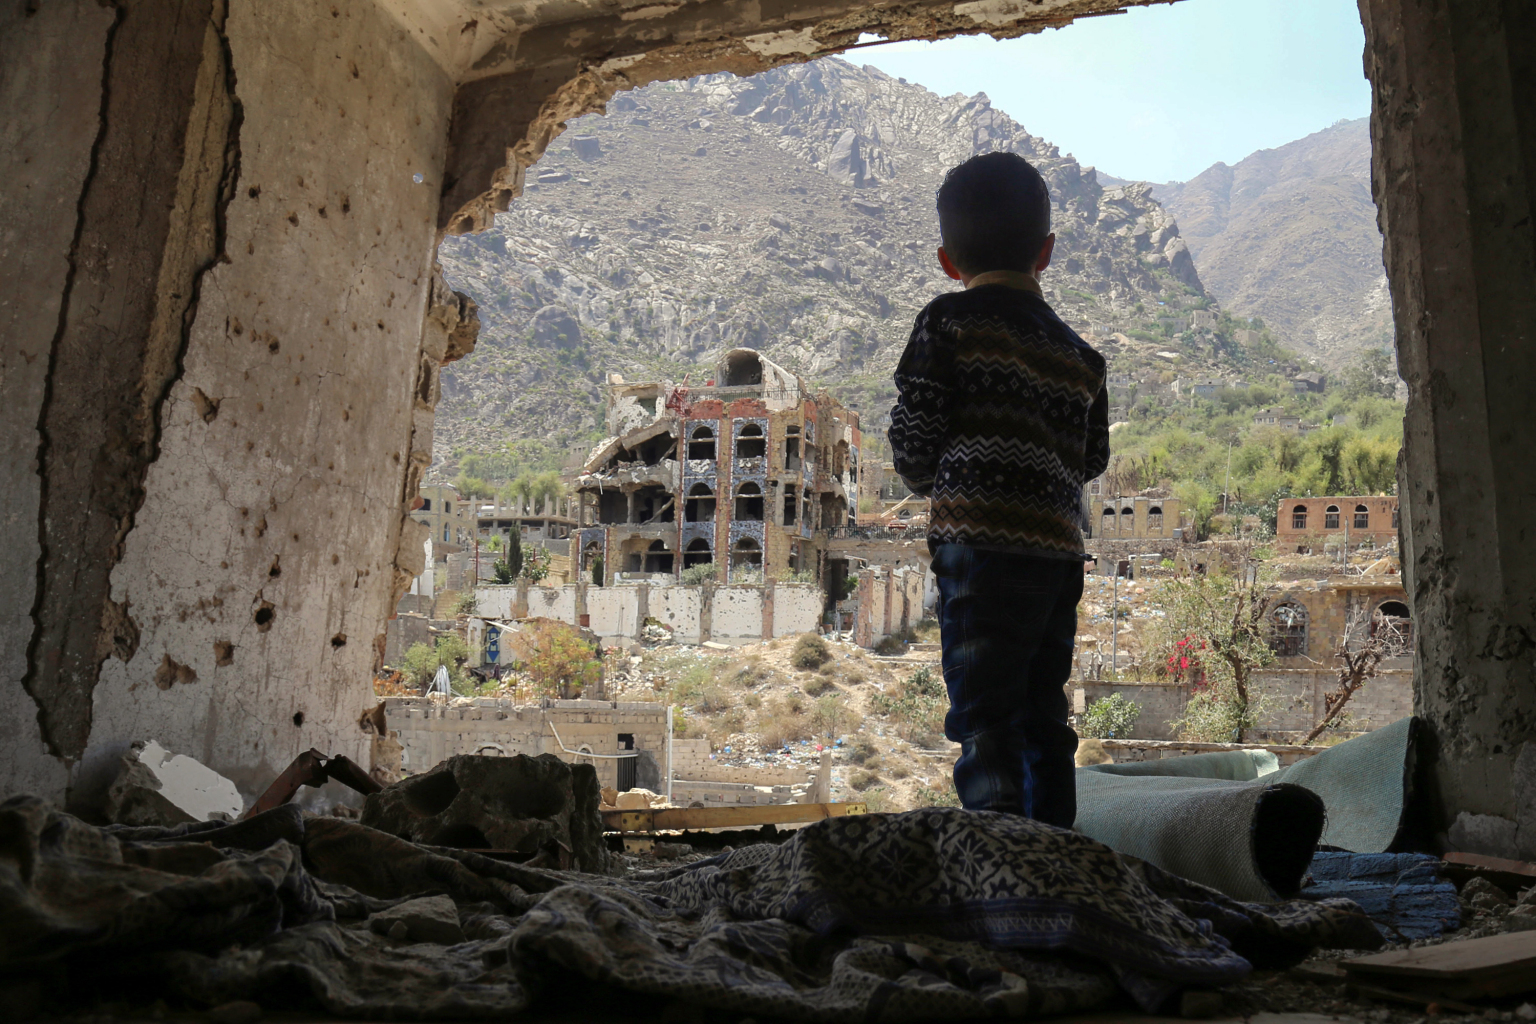 U.S. Is Complicit in Child Slaughter in Yemen